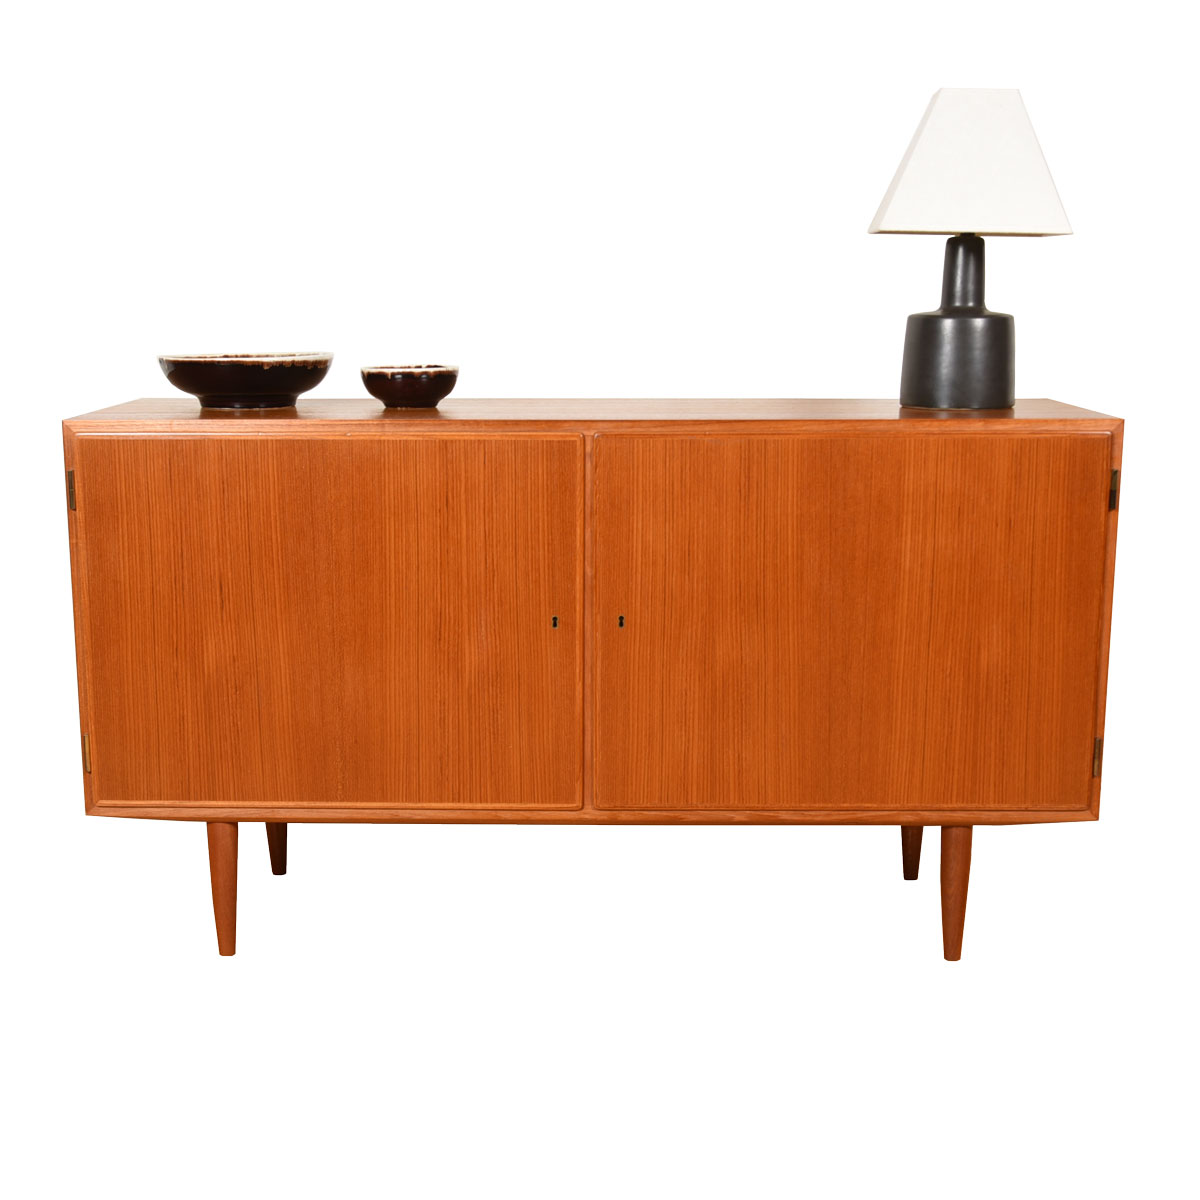 Locking Door Danish Teak Condo-Sized Storage Cabinet / Sideboard